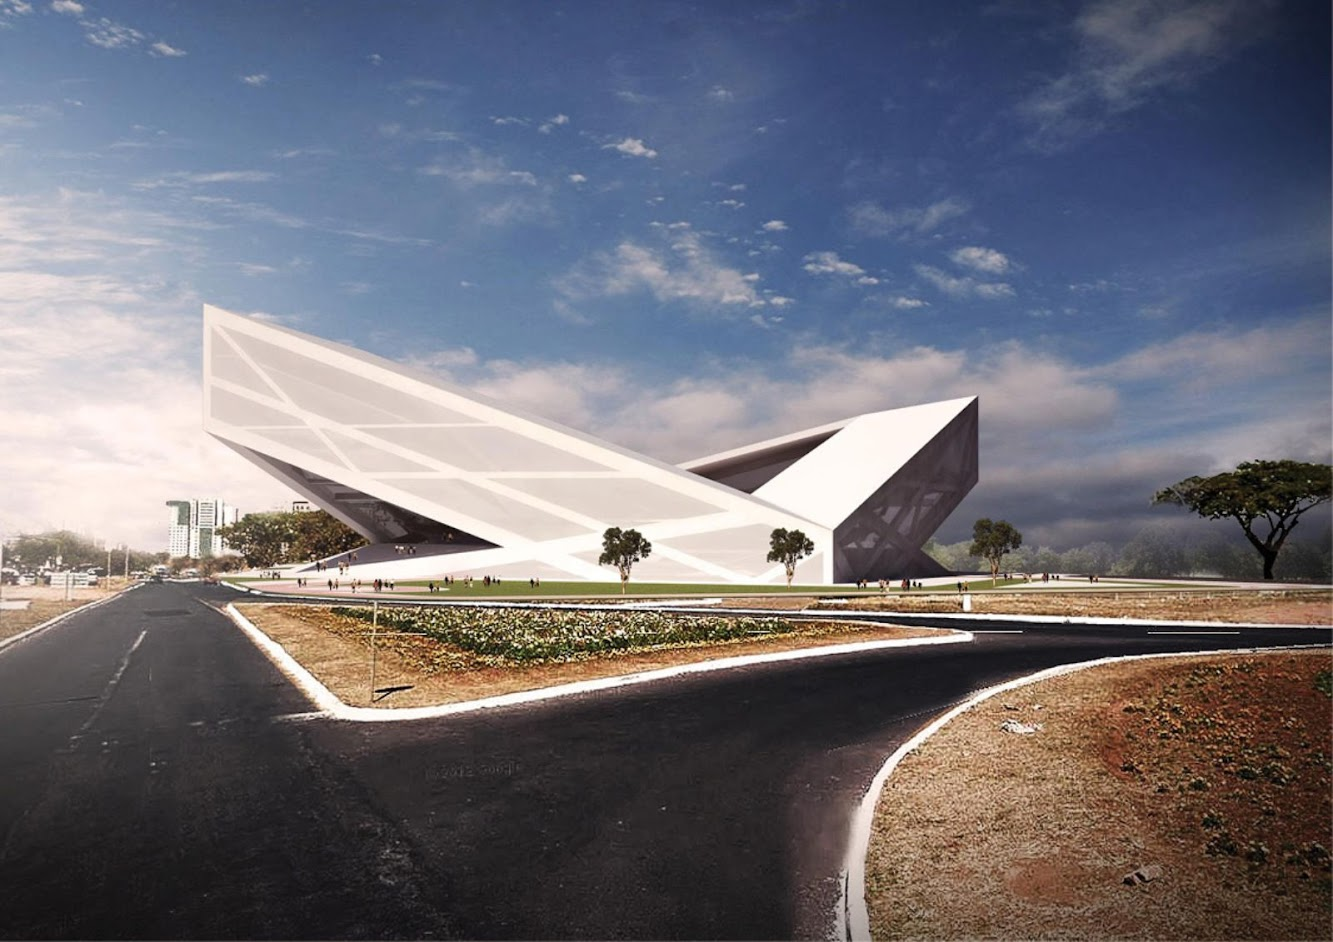 Brasilia - Distretto Federale, Brasile: Brasilia Athletics Stadium by Bf Architecture